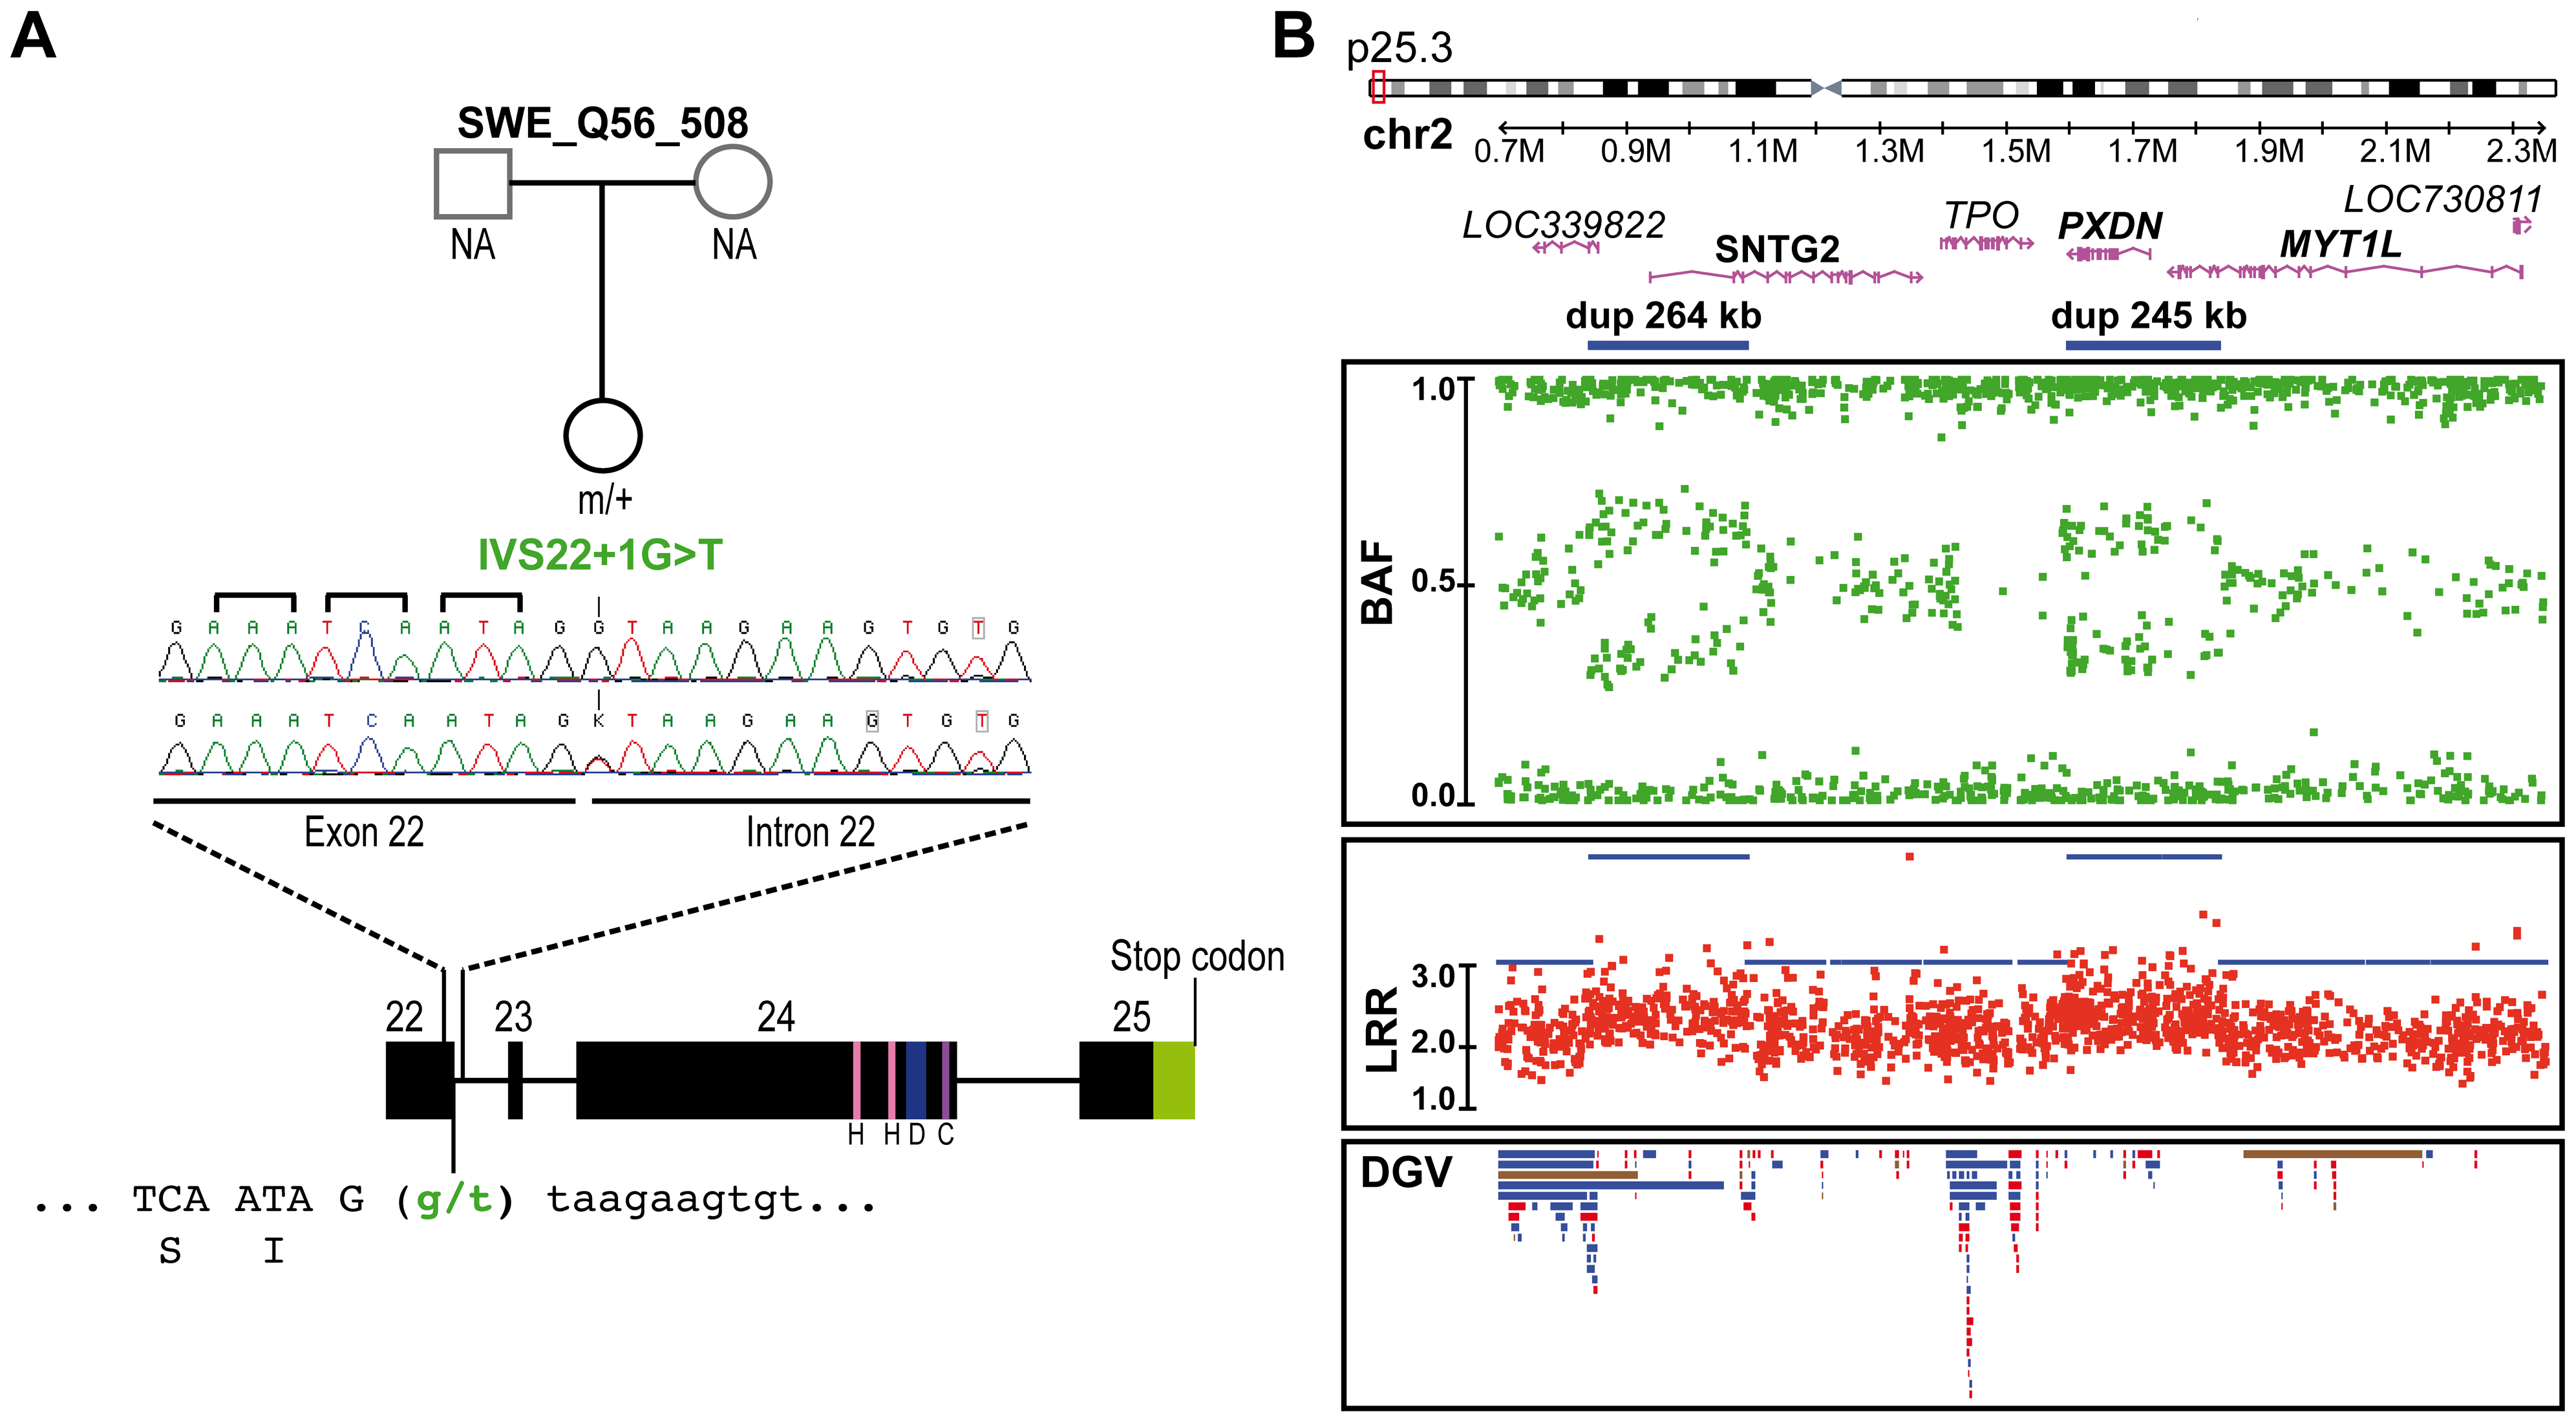 Genetic alterations identified in the control subject SWE_Q56_508.